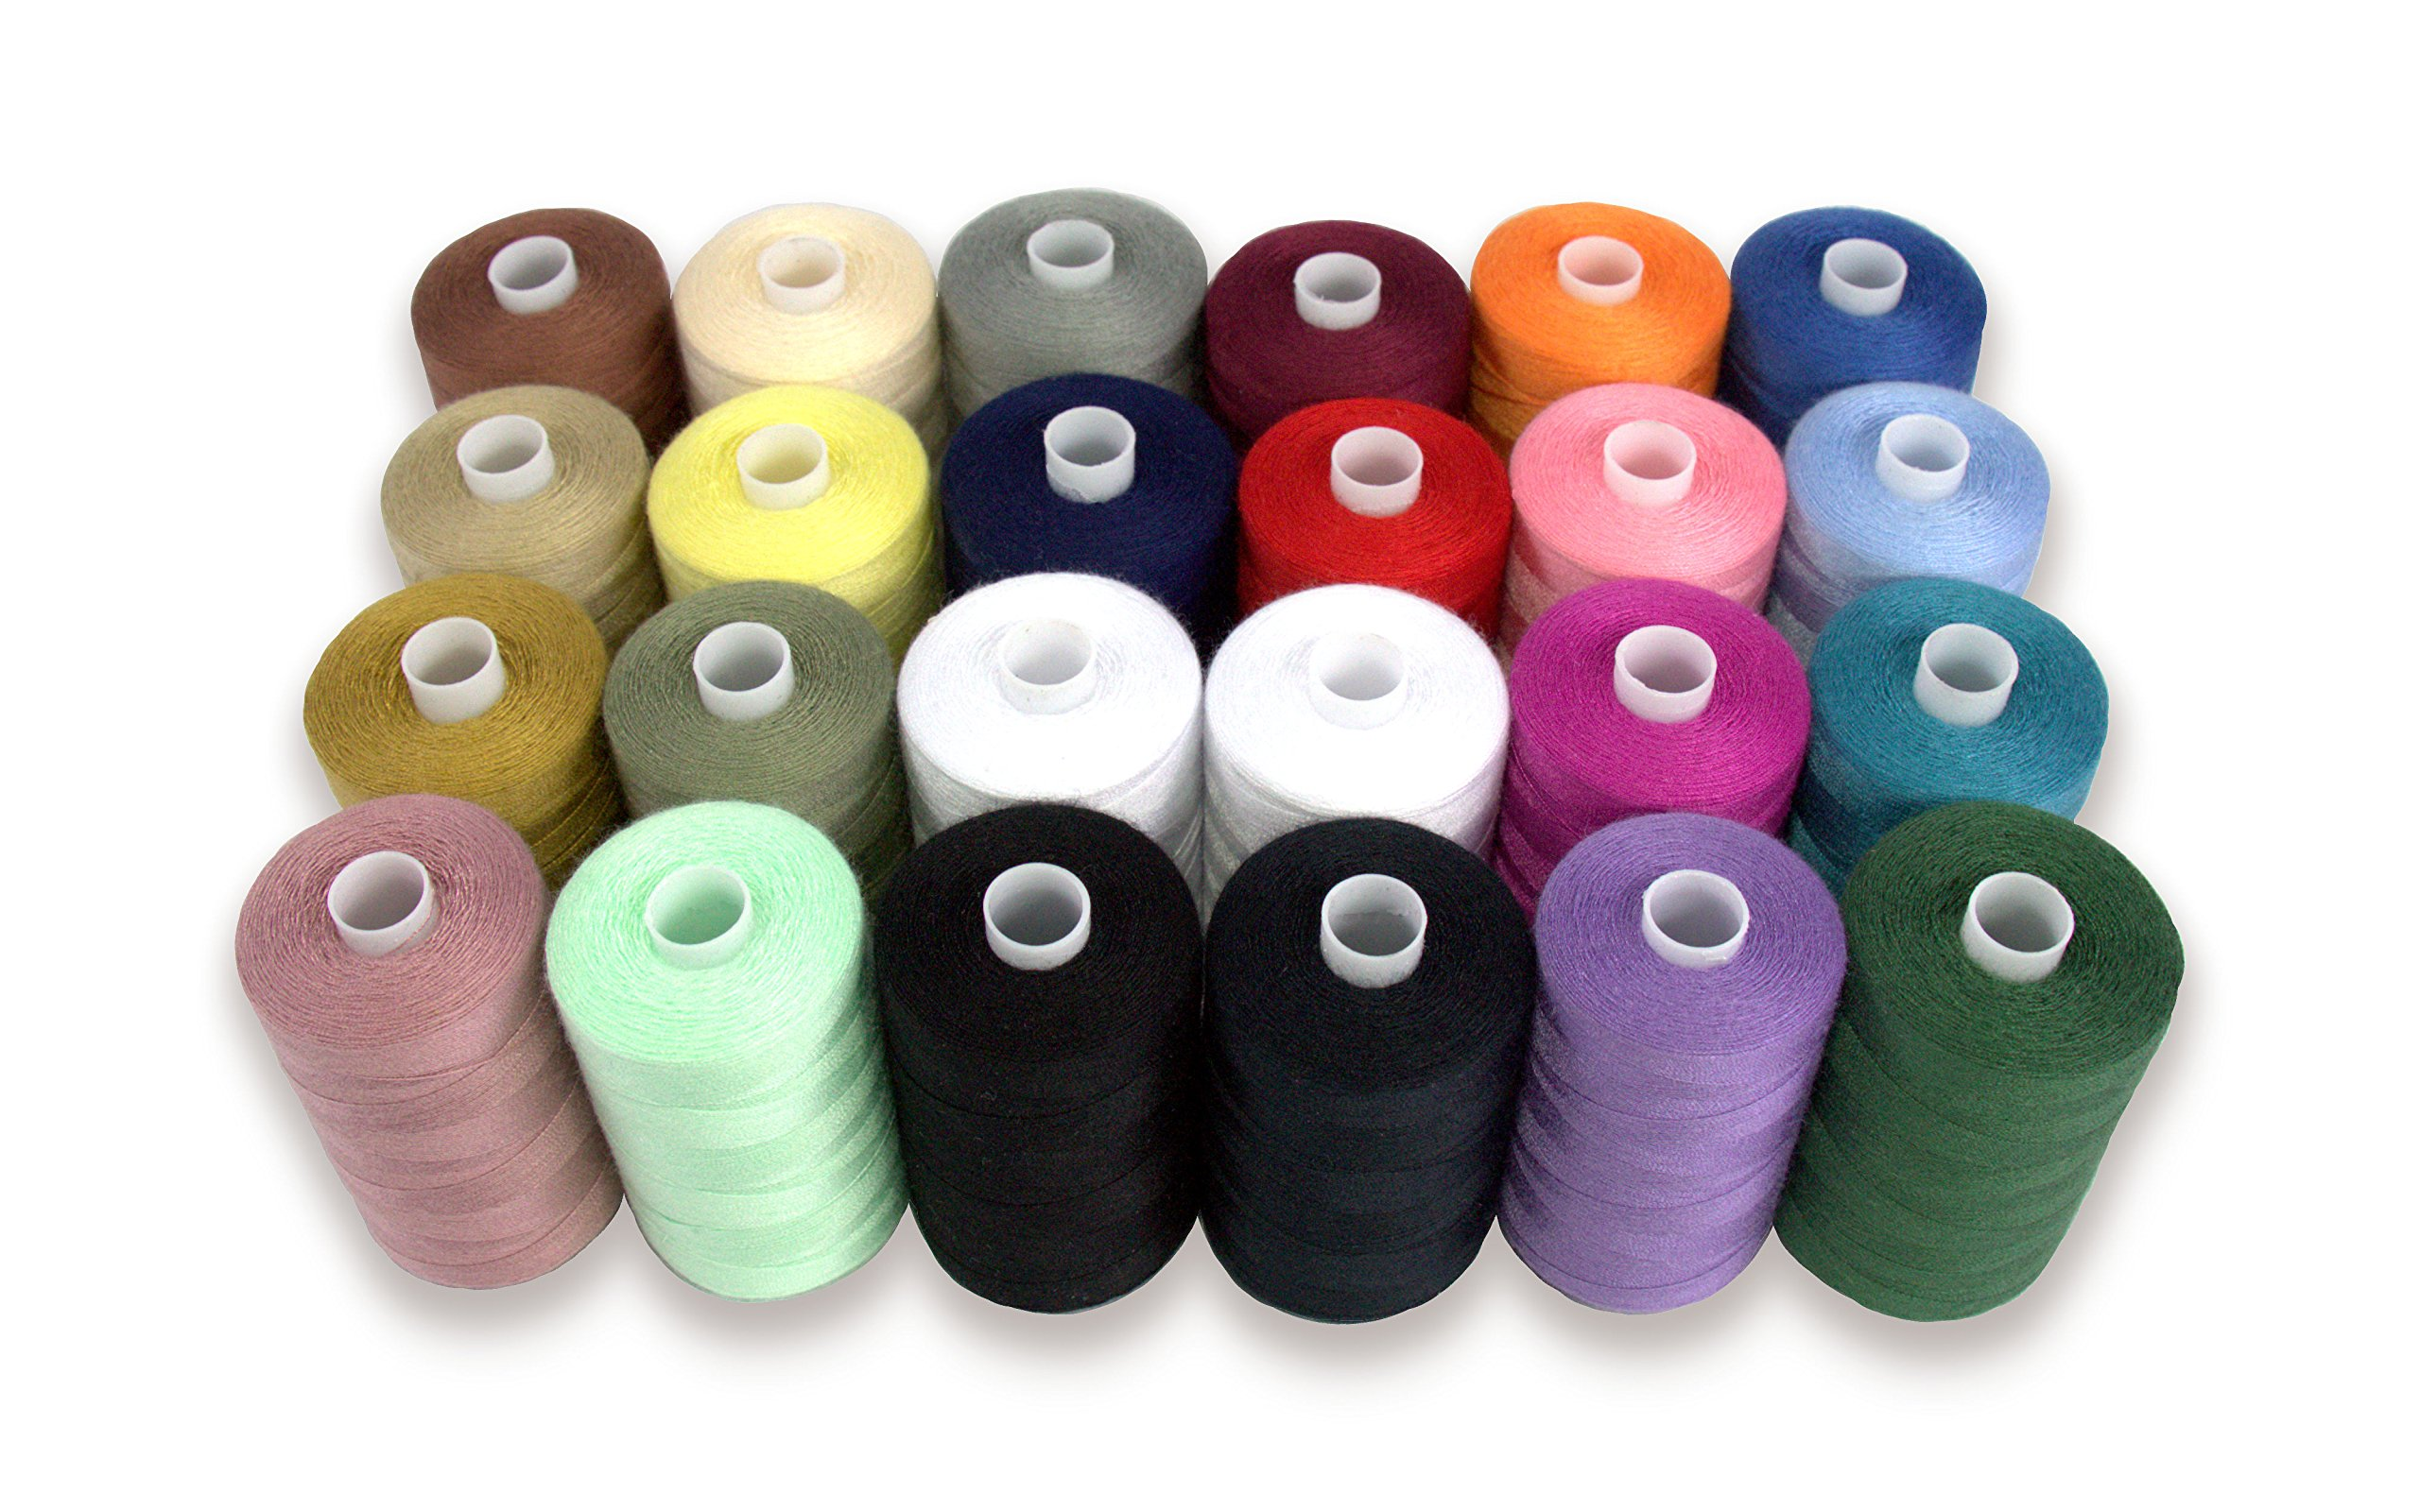 SEWING AID All Purpose Polyester Thread for Hand & Sewing Machine, 24 Spools in Assorted Colors, 1000 yd Each, Double of Black & White Threads by Sewing Aid